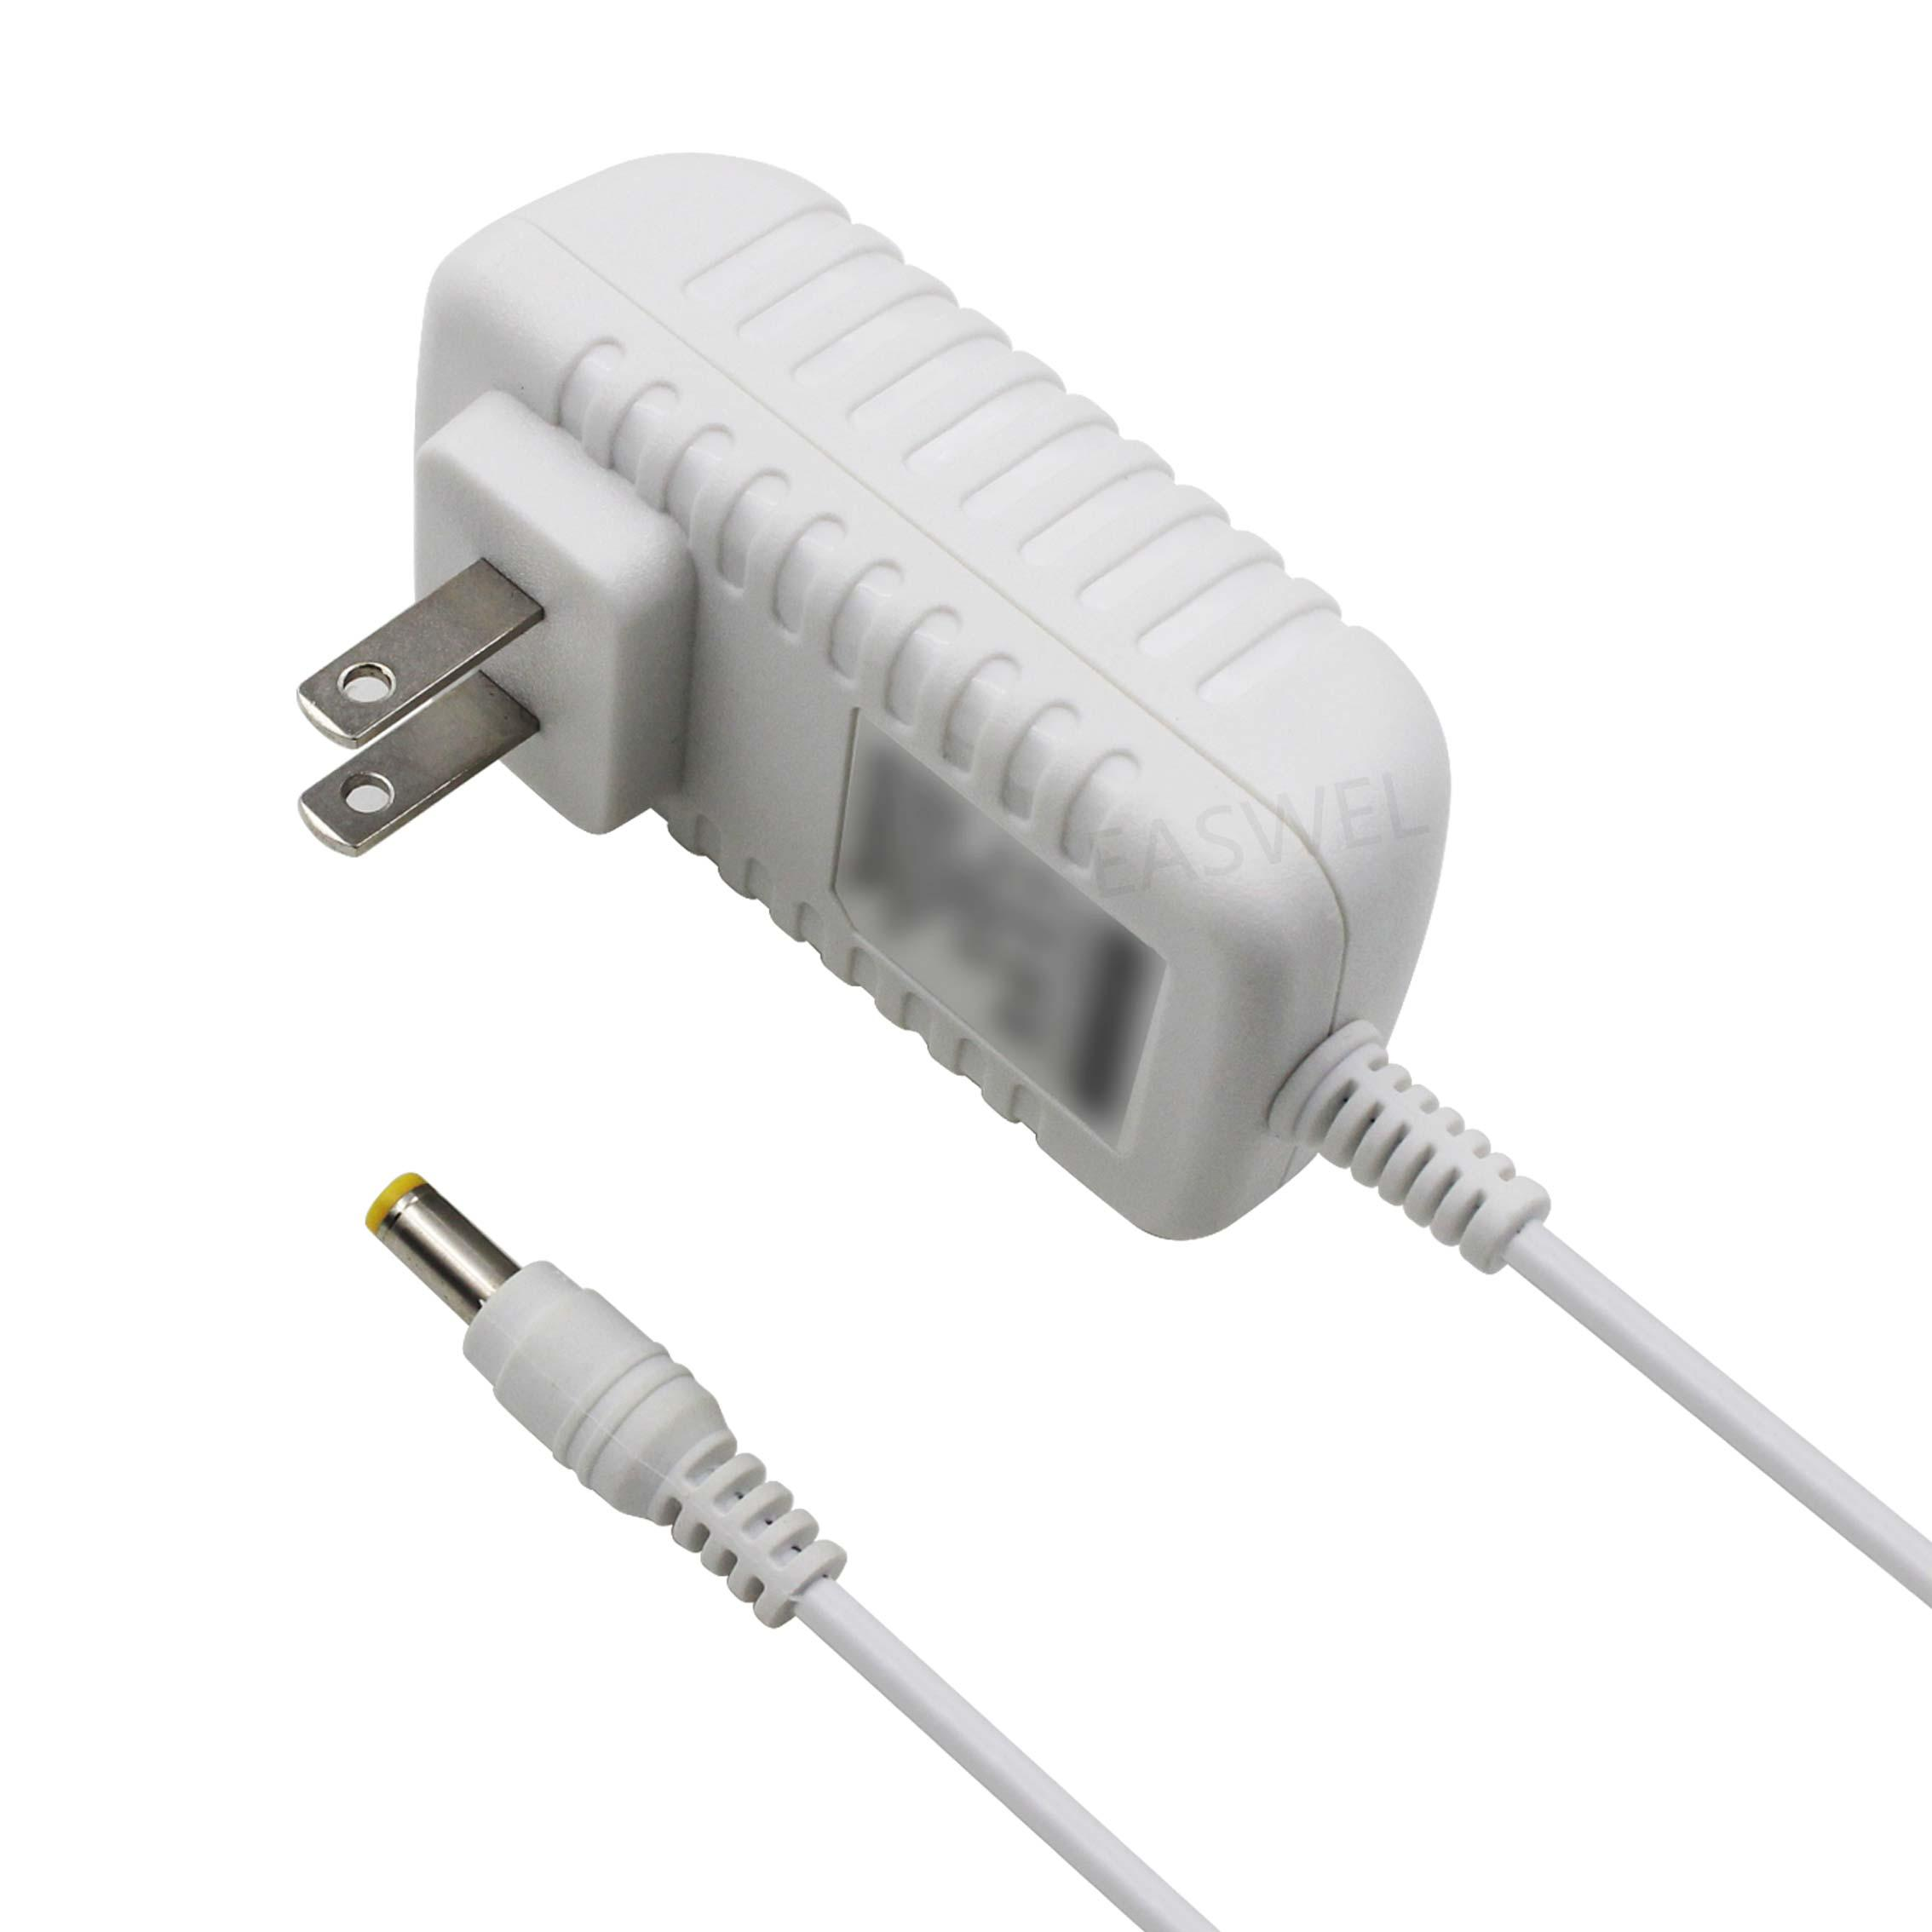 12V 2A AC Wall Charger Power Adapter for WD MY BOOK Essential External Hard  Drive 4TB 3TB 2TB 1TB